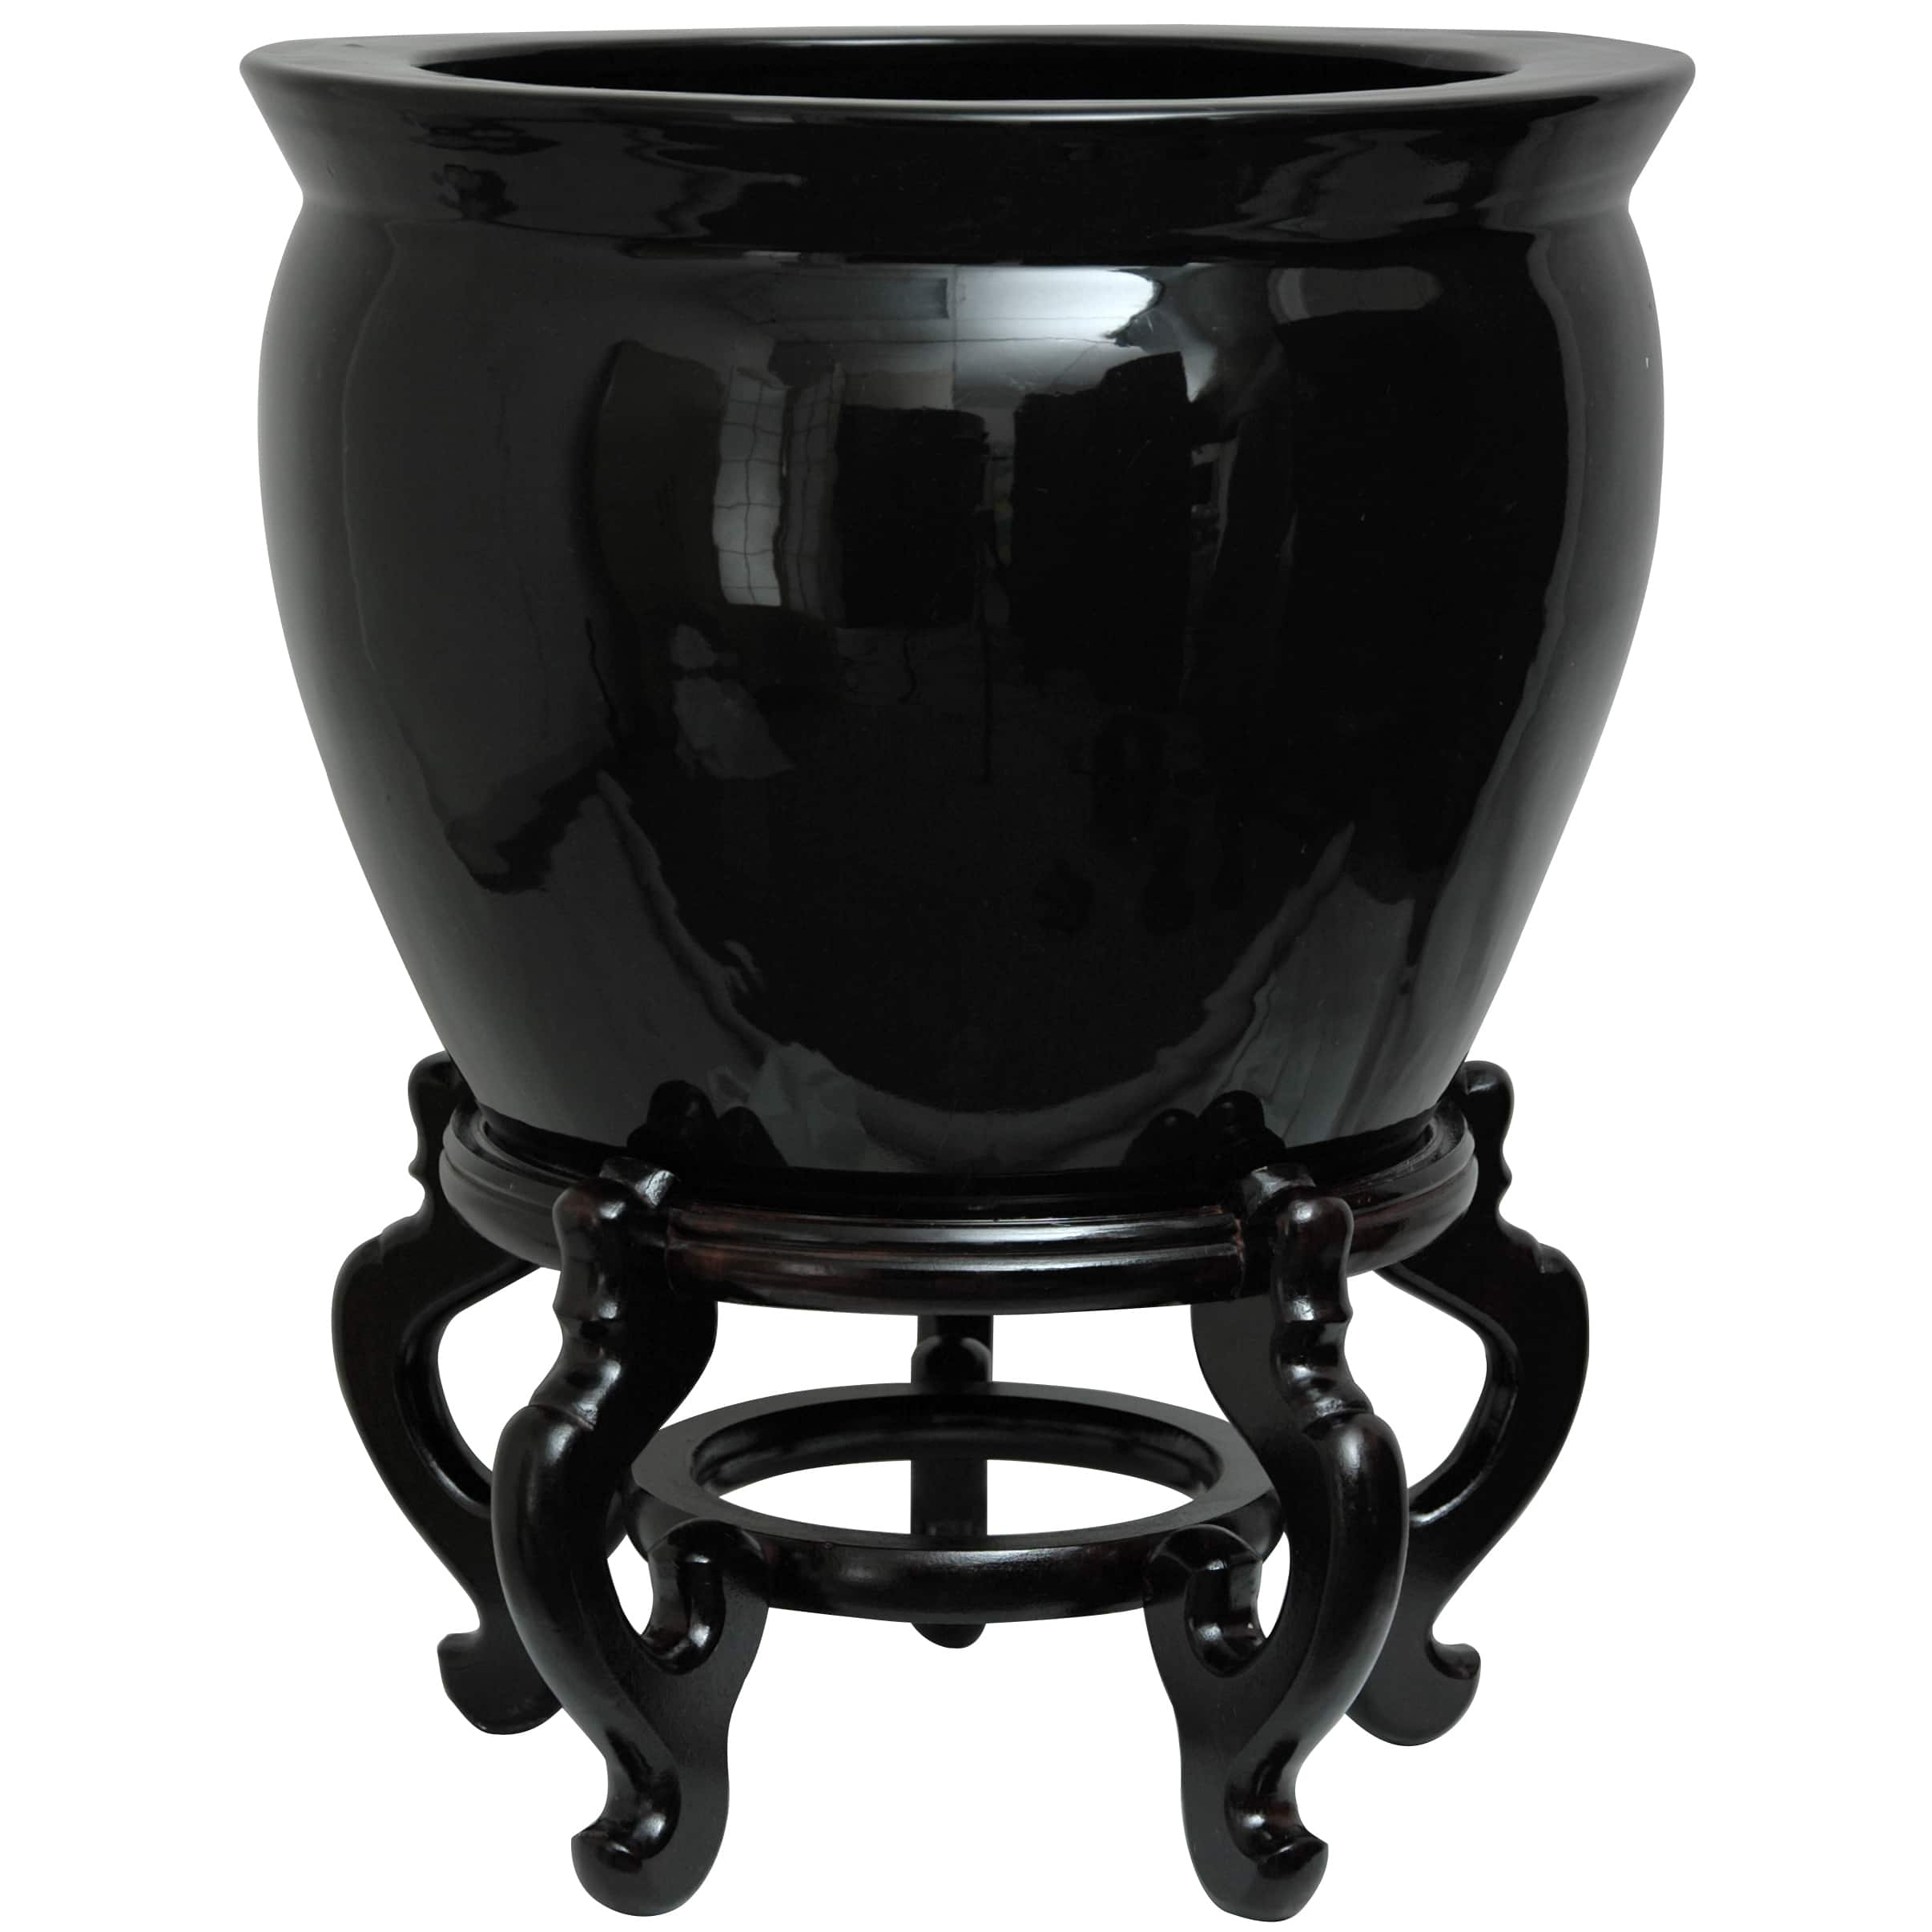 ORIENTAL FURNITURE Handmade Porcelain 16-inch Solid Black Fishbowl (China)